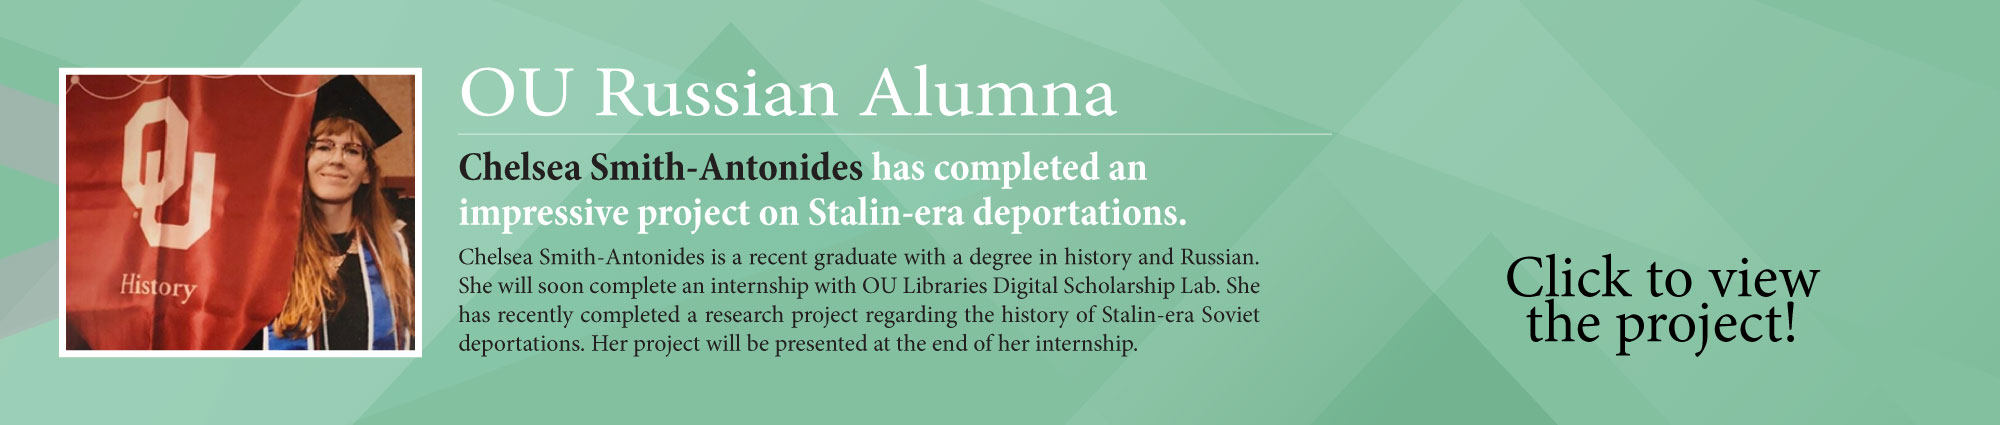 Chelsea Smith-Antonides' digital project on Stalin-era deportations.